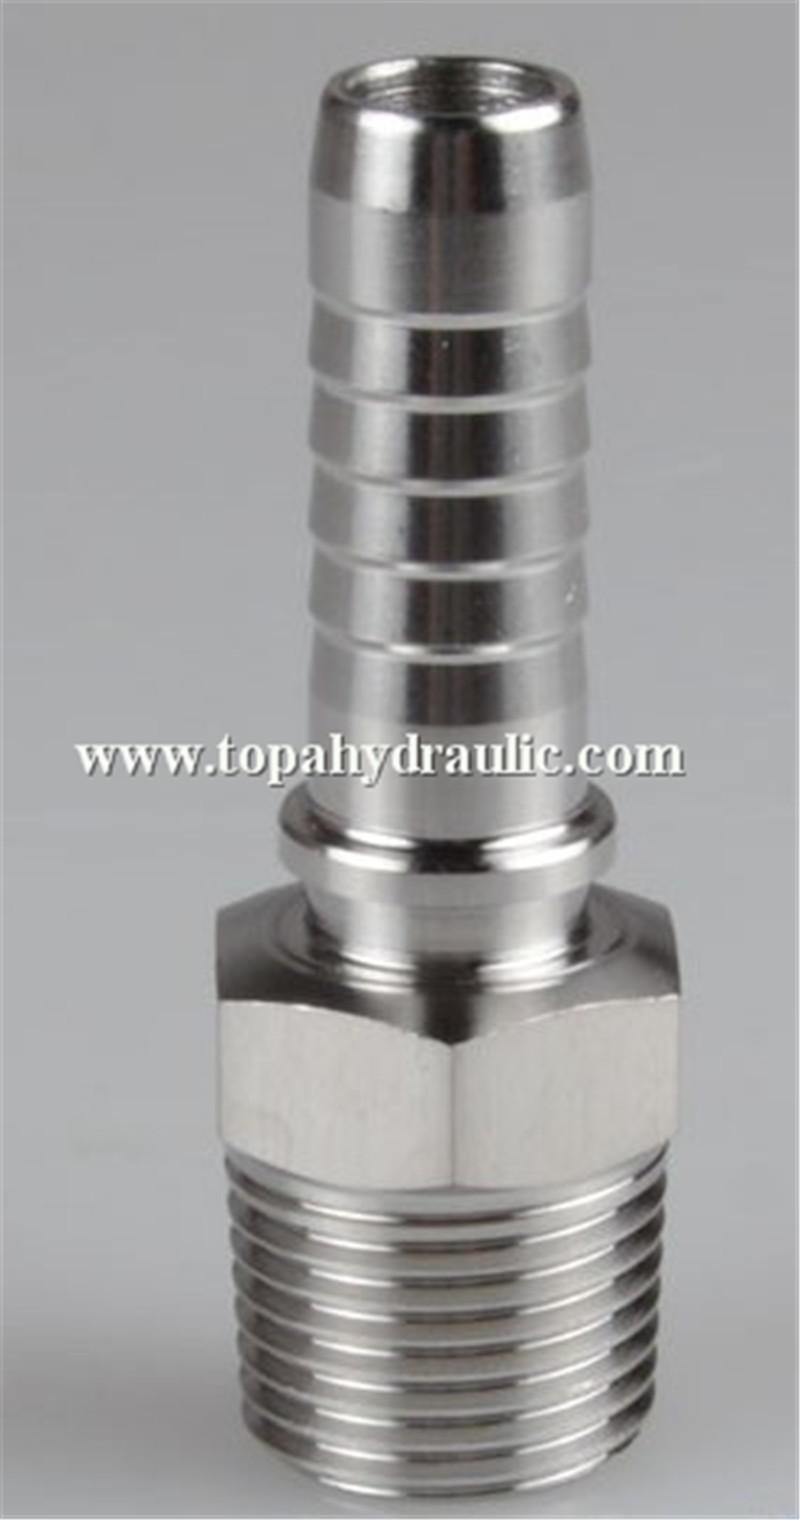 duffield high pressure hydraulic parts bsp fittings